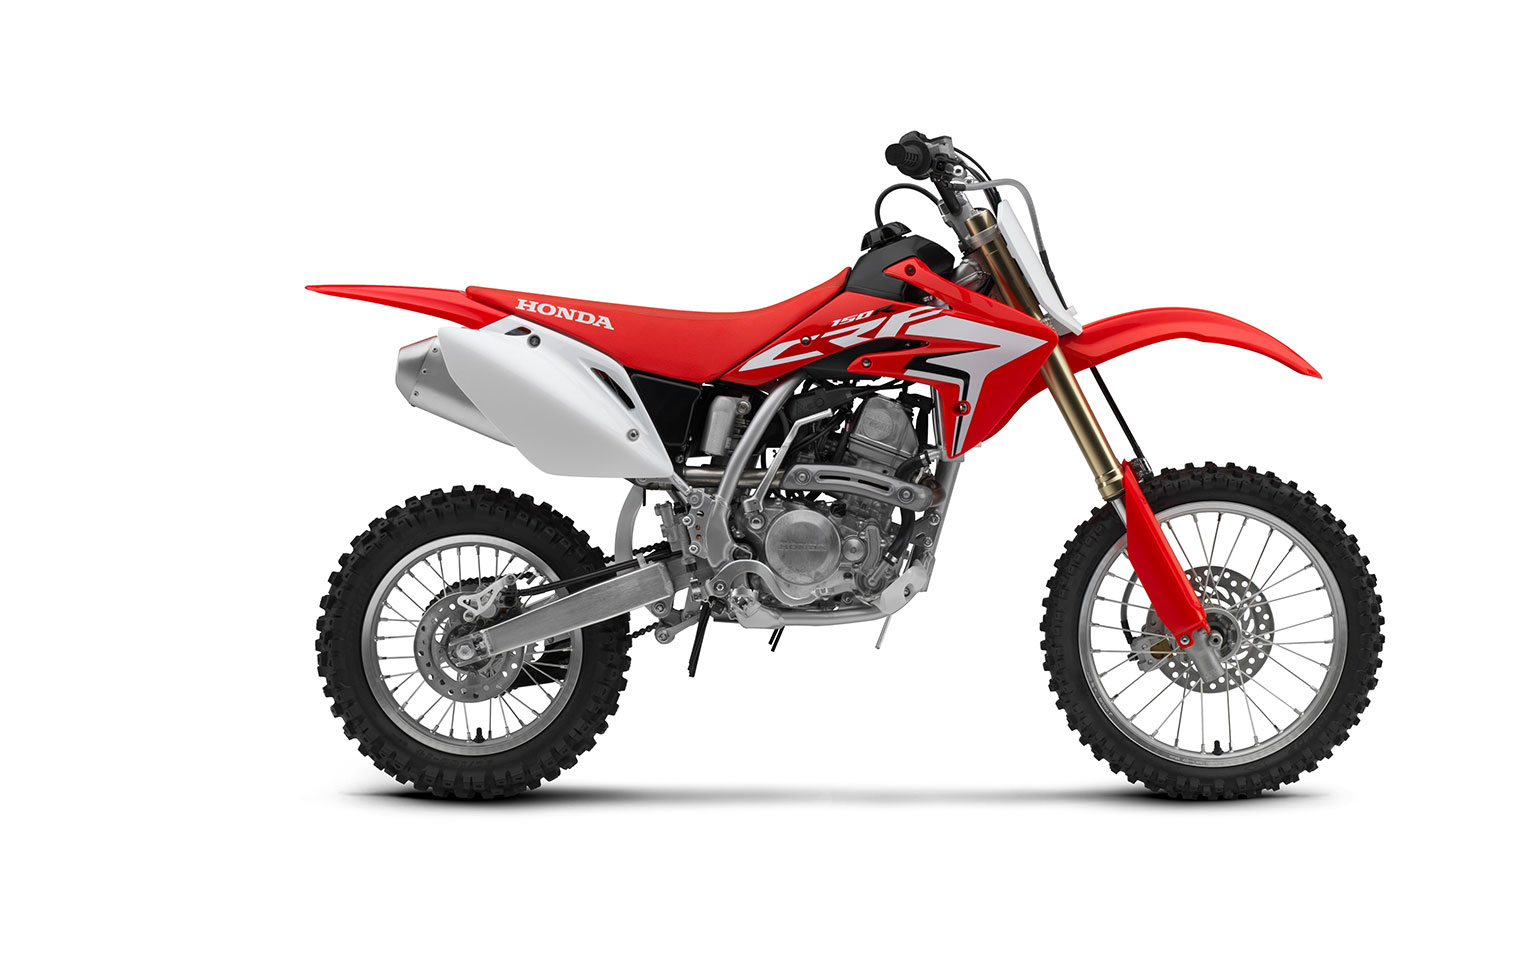 The CRF150 still as a steel frame